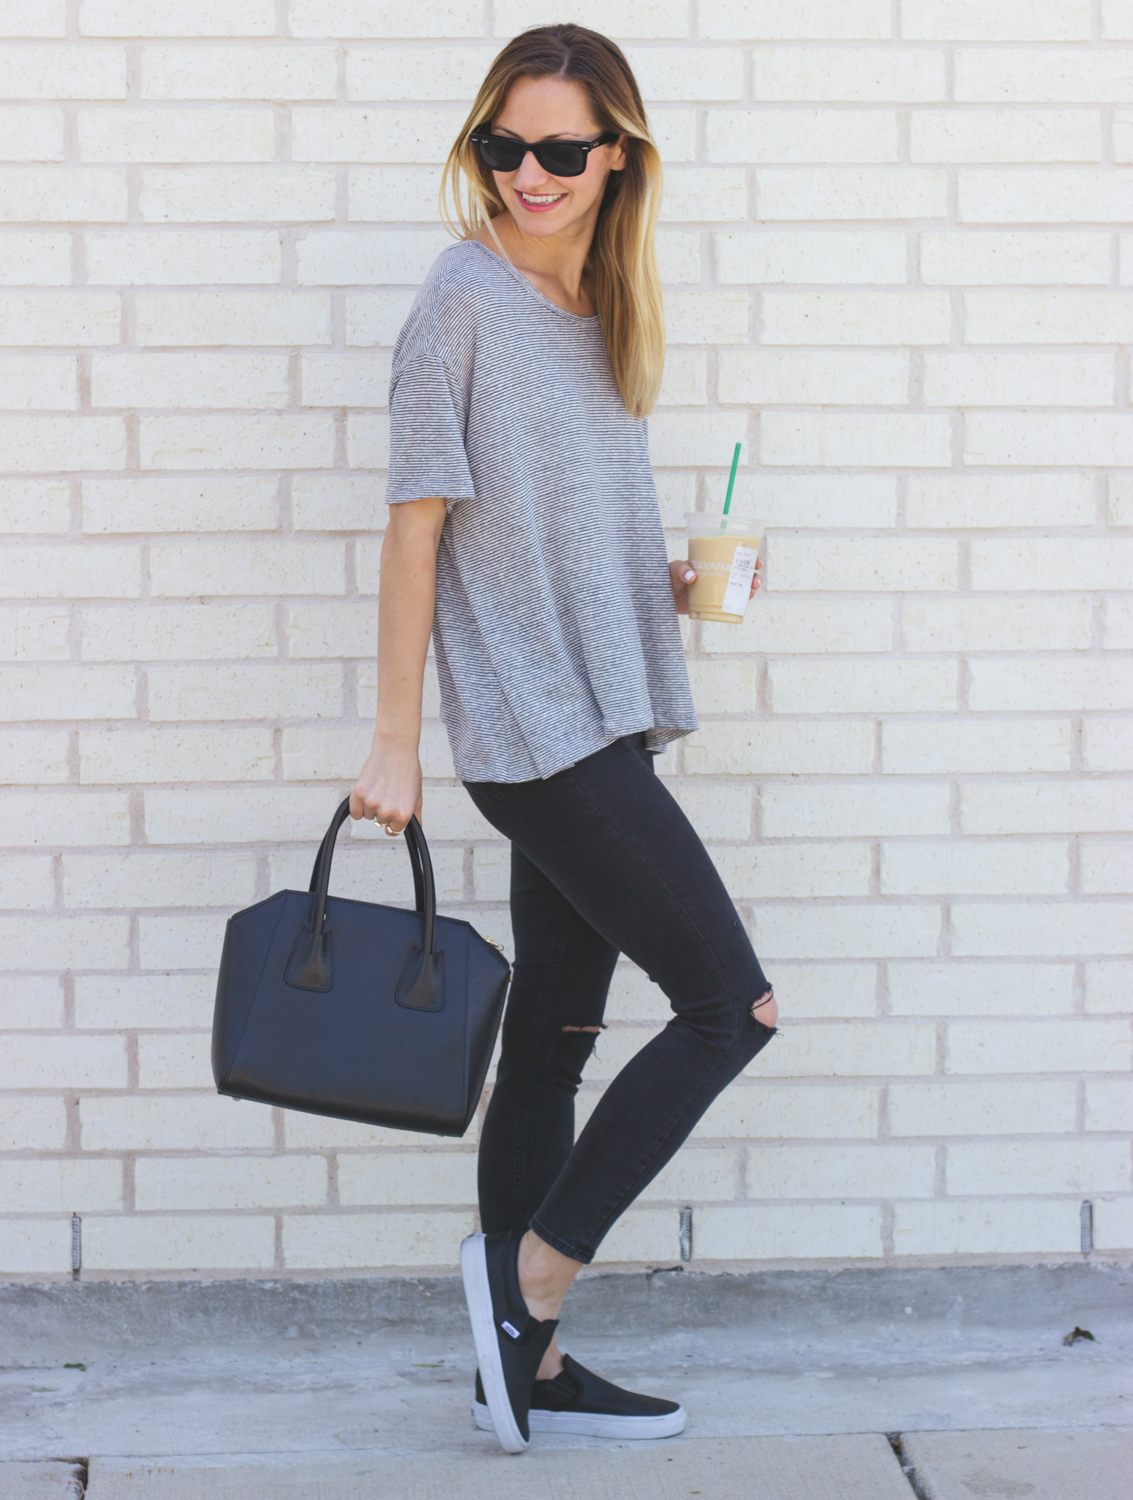 livvyland-blog-olivia-watson-austin-texas-fashion-blogger-iced-coffee-trendy-hipster-striped-shirt-vans-black-slip-on-leather-sneakers-summer-spring-outfit-casual-topshop-jamie-black-jeans-4